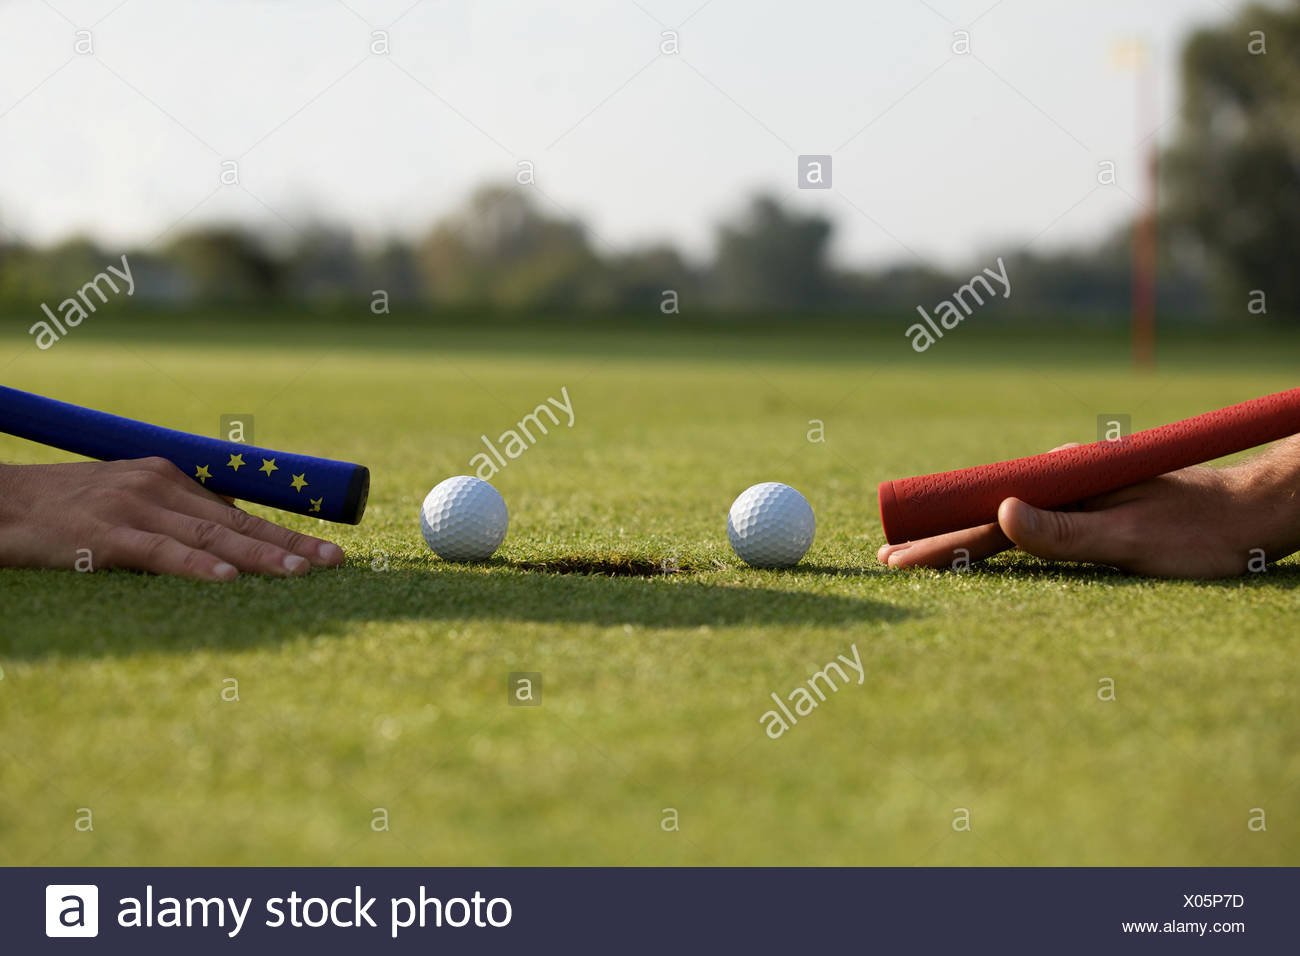 Human hands using golf balls to play pool - Stock Image